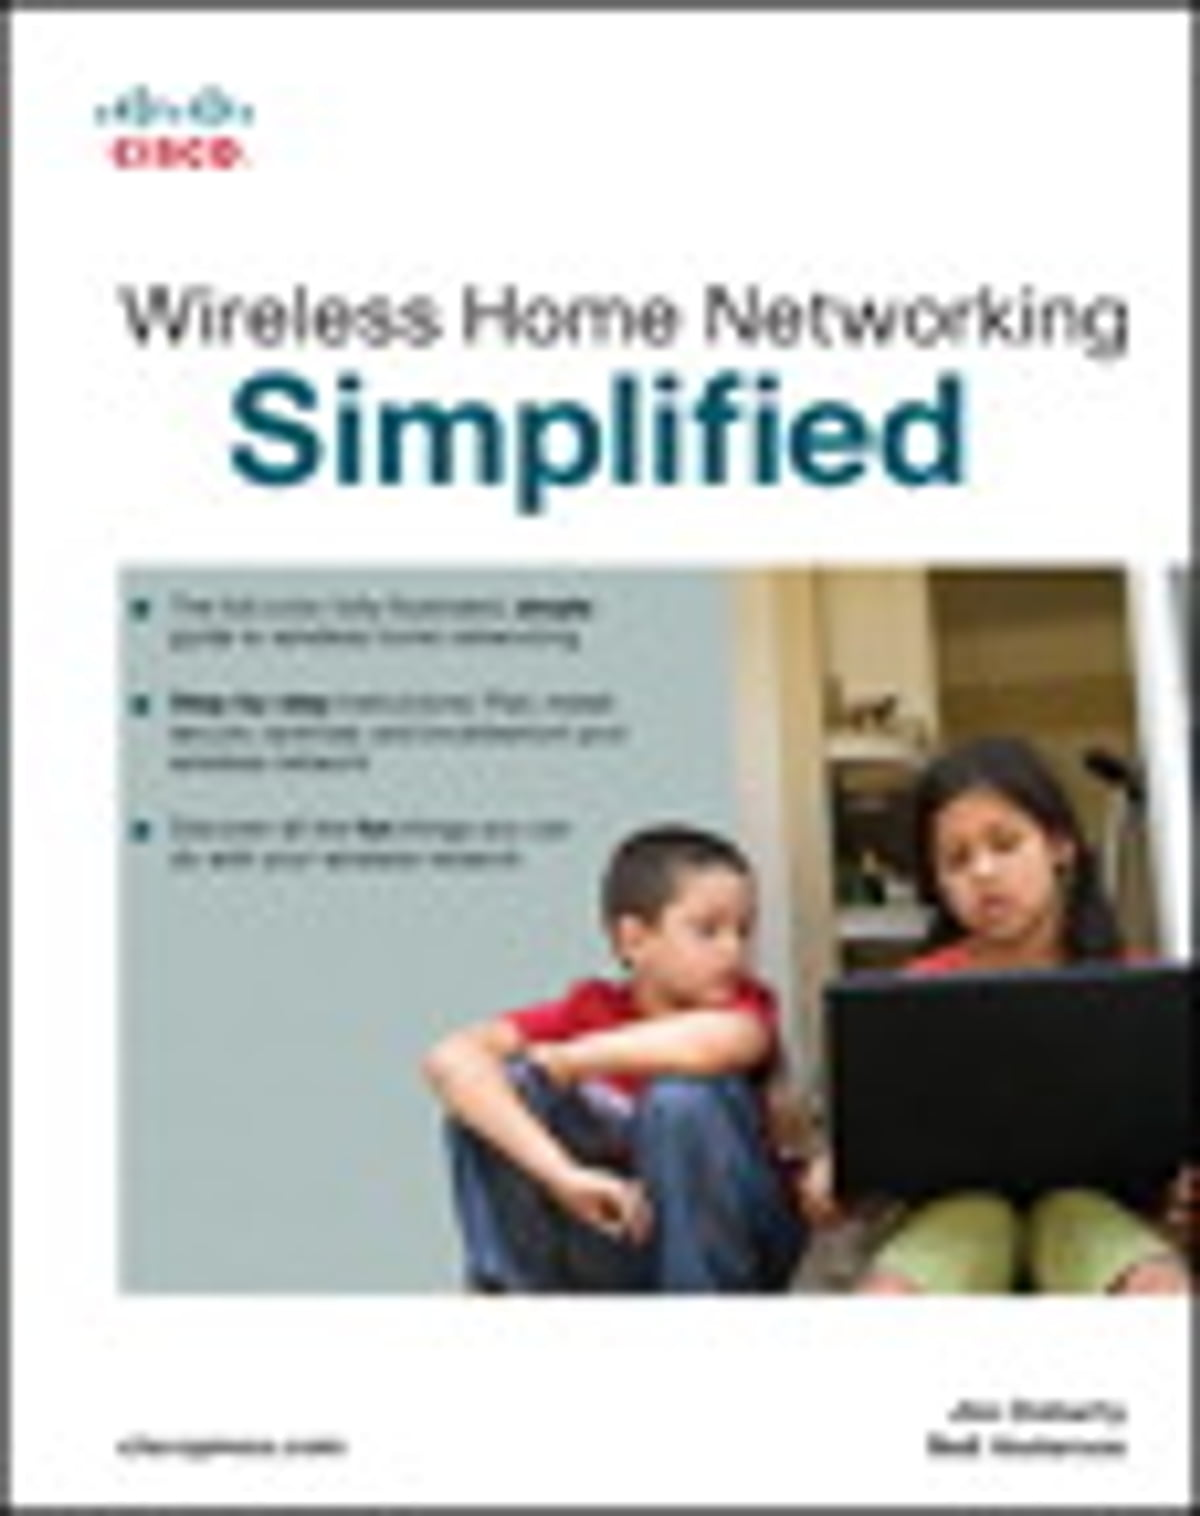 Wireless Home Networking Simplified (Networking Technology)